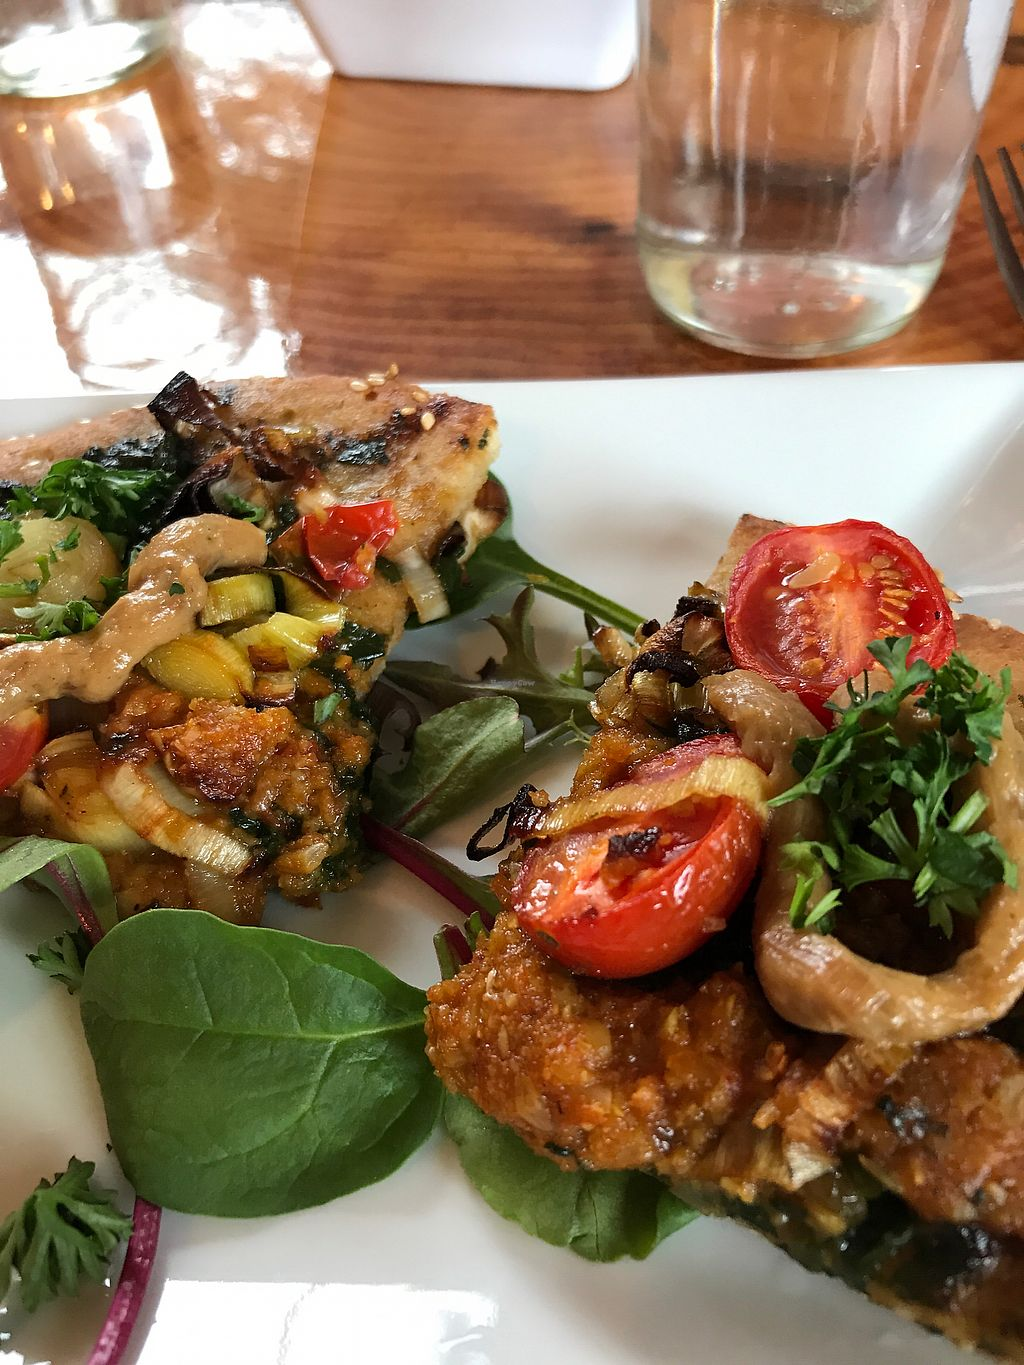 """Photo of Shayna B's By The Sea  by <a href=""""/members/profile/MarcieMosier"""">MarcieMosier</a> <br/>Kale Pesto Pizza <br/> March 5, 2018  - <a href='/contact/abuse/image/104454/366848'>Report</a>"""